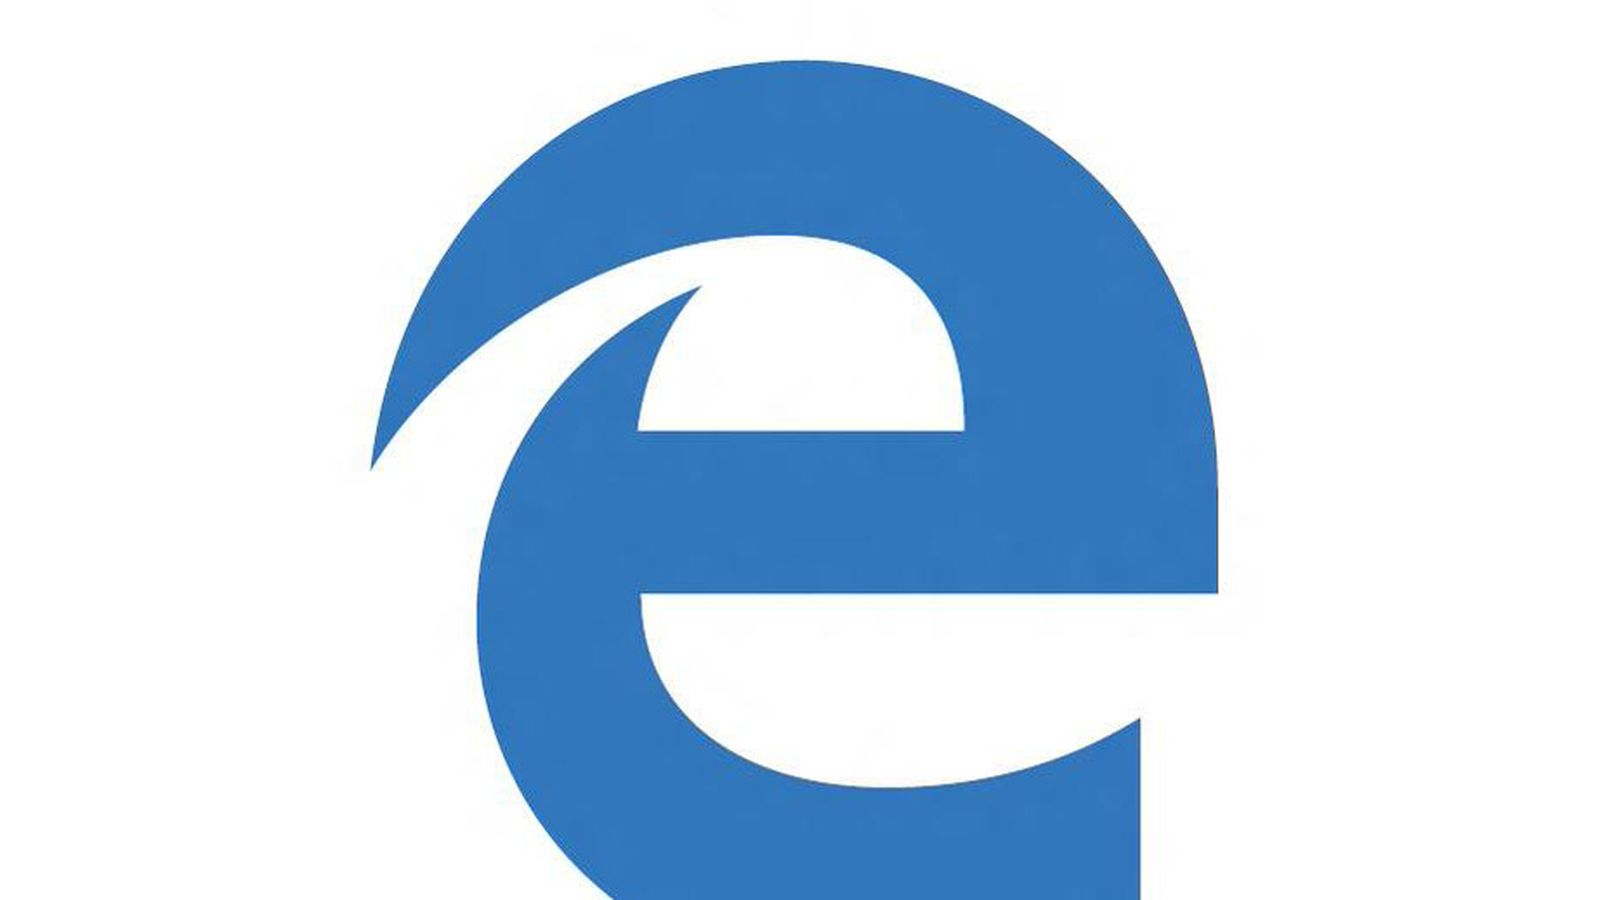 Microsofts Edge logo clings to the past The Verge 1600x900